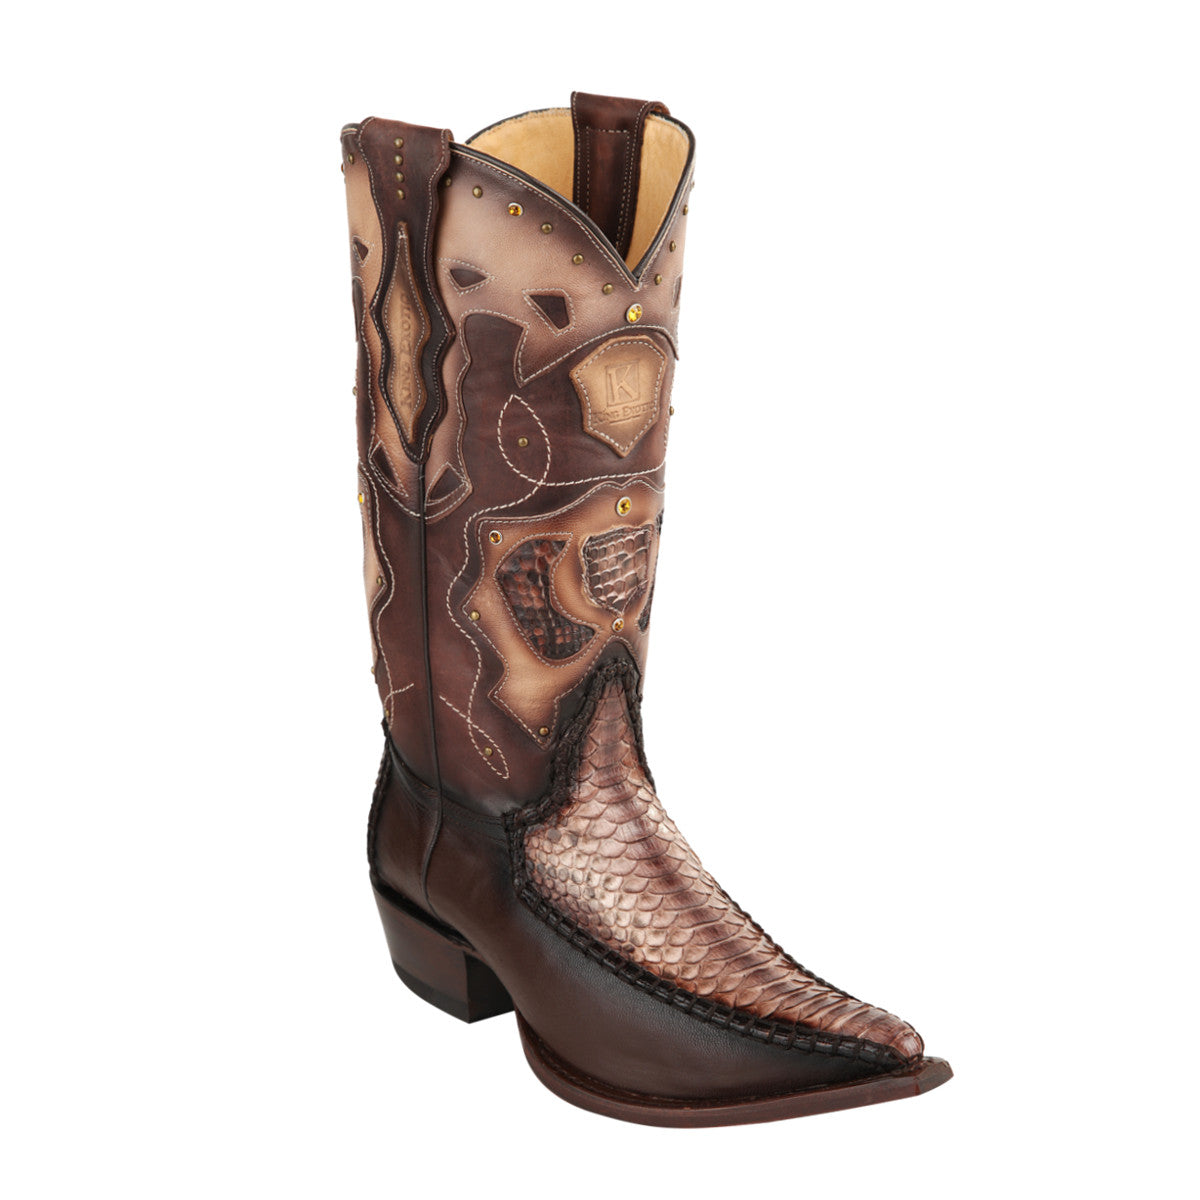 King Exotic H95 3x Toe Python Stitched - Rustic Brown